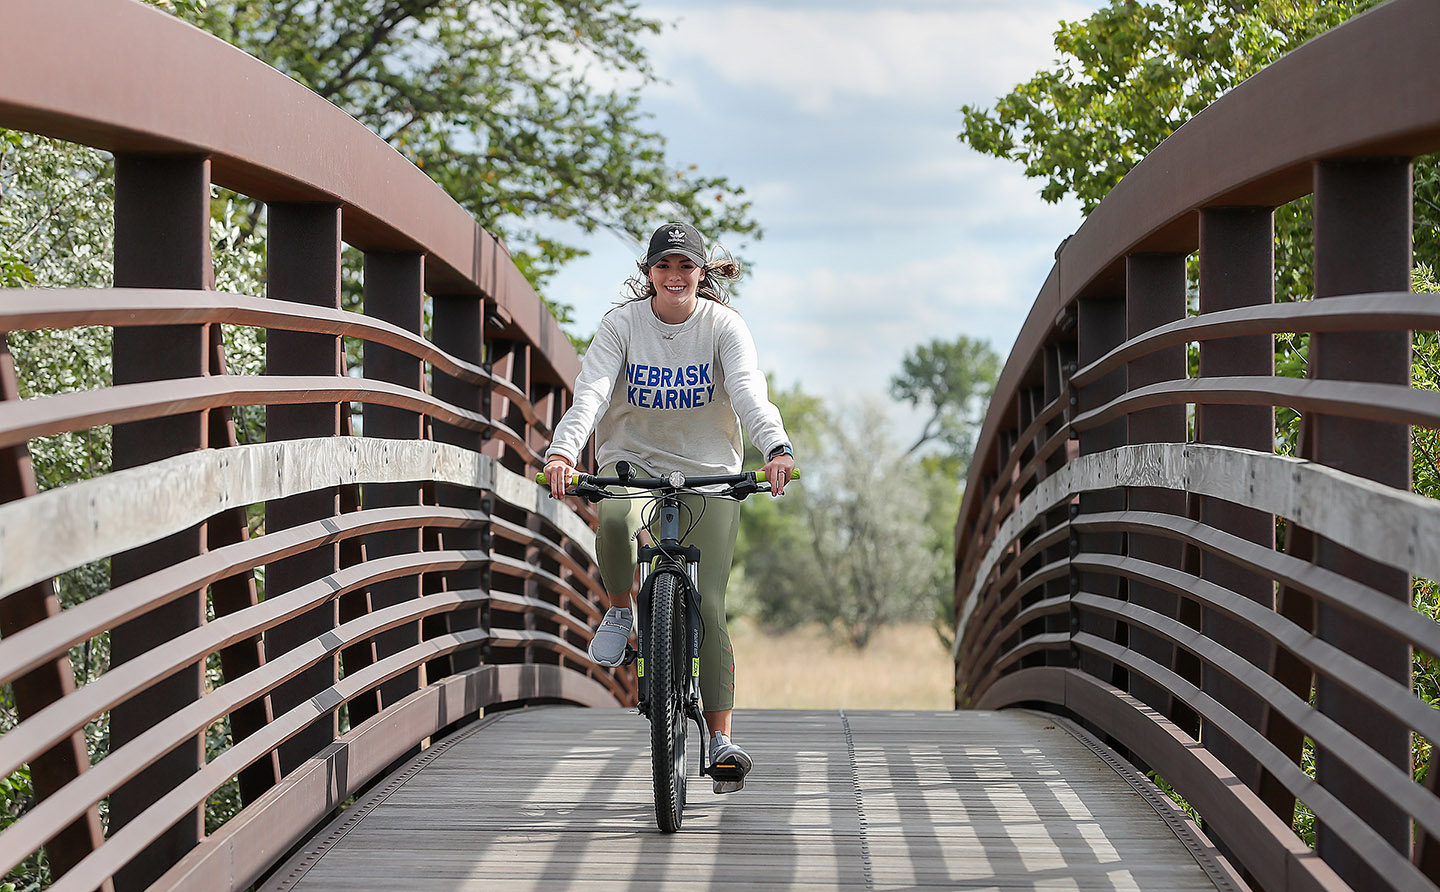 Seneca Hertel, a UNK freshman from South Dakota, really enjoys the parks, bike trails and other outdoor opportunities in the Kearney area.